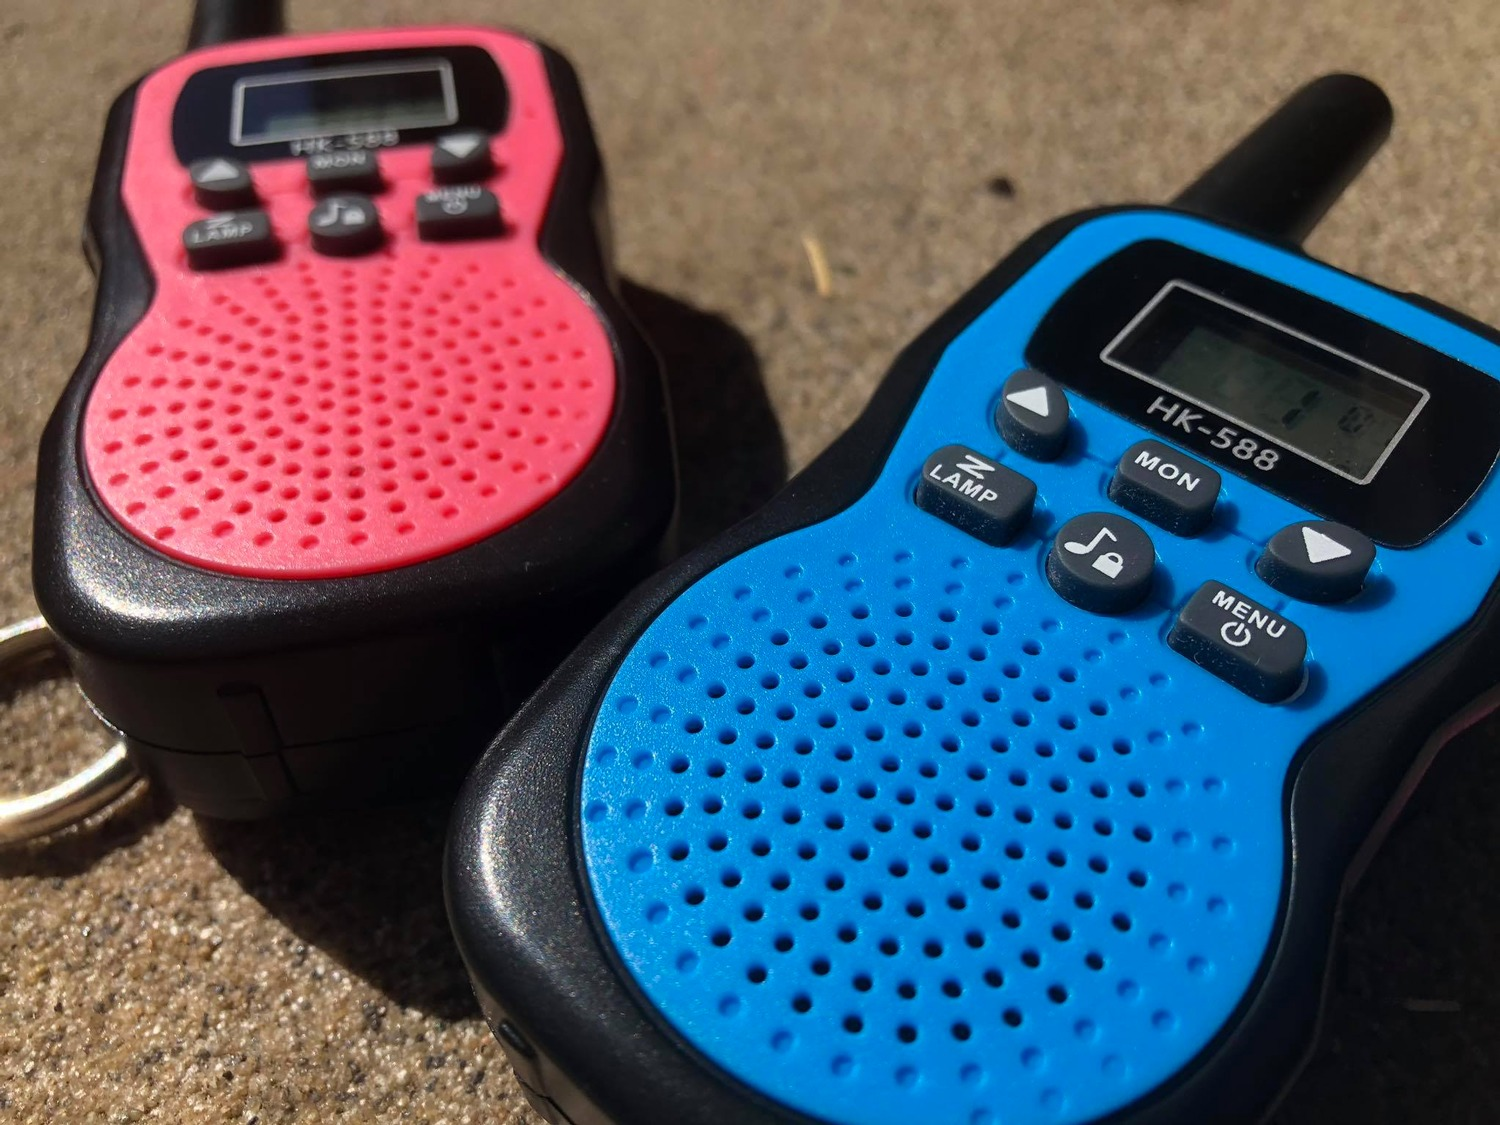 Walkie-Talkies für Kinder, MIBOTE Walkie-Talkies für Kinder im 3er-Set im Test